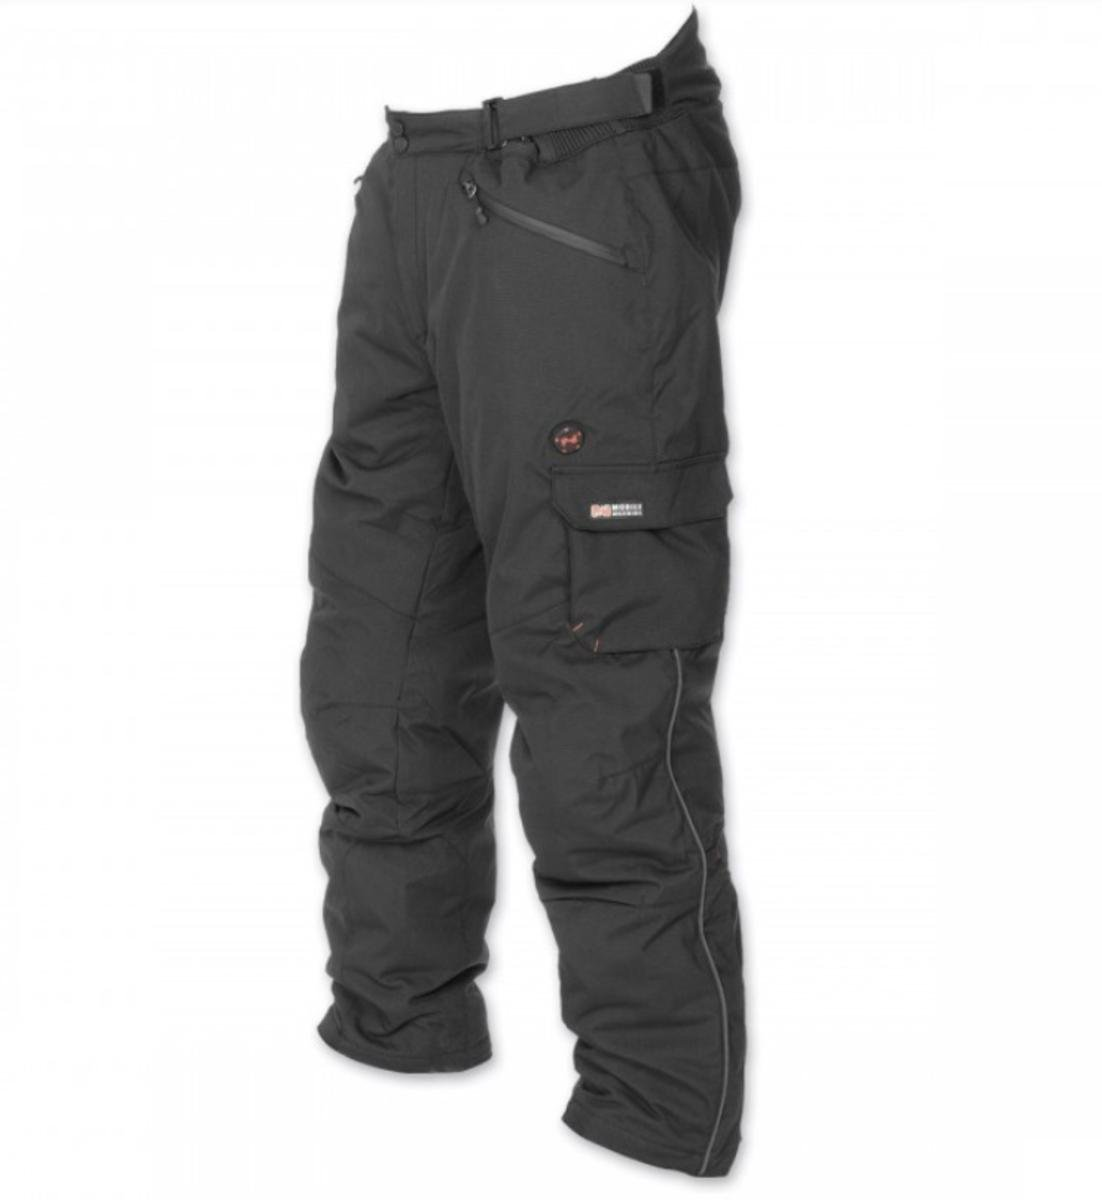 Mobile Warming Unisex-Adult Dual Power Heated 12.v Pants (Black, X-Large)